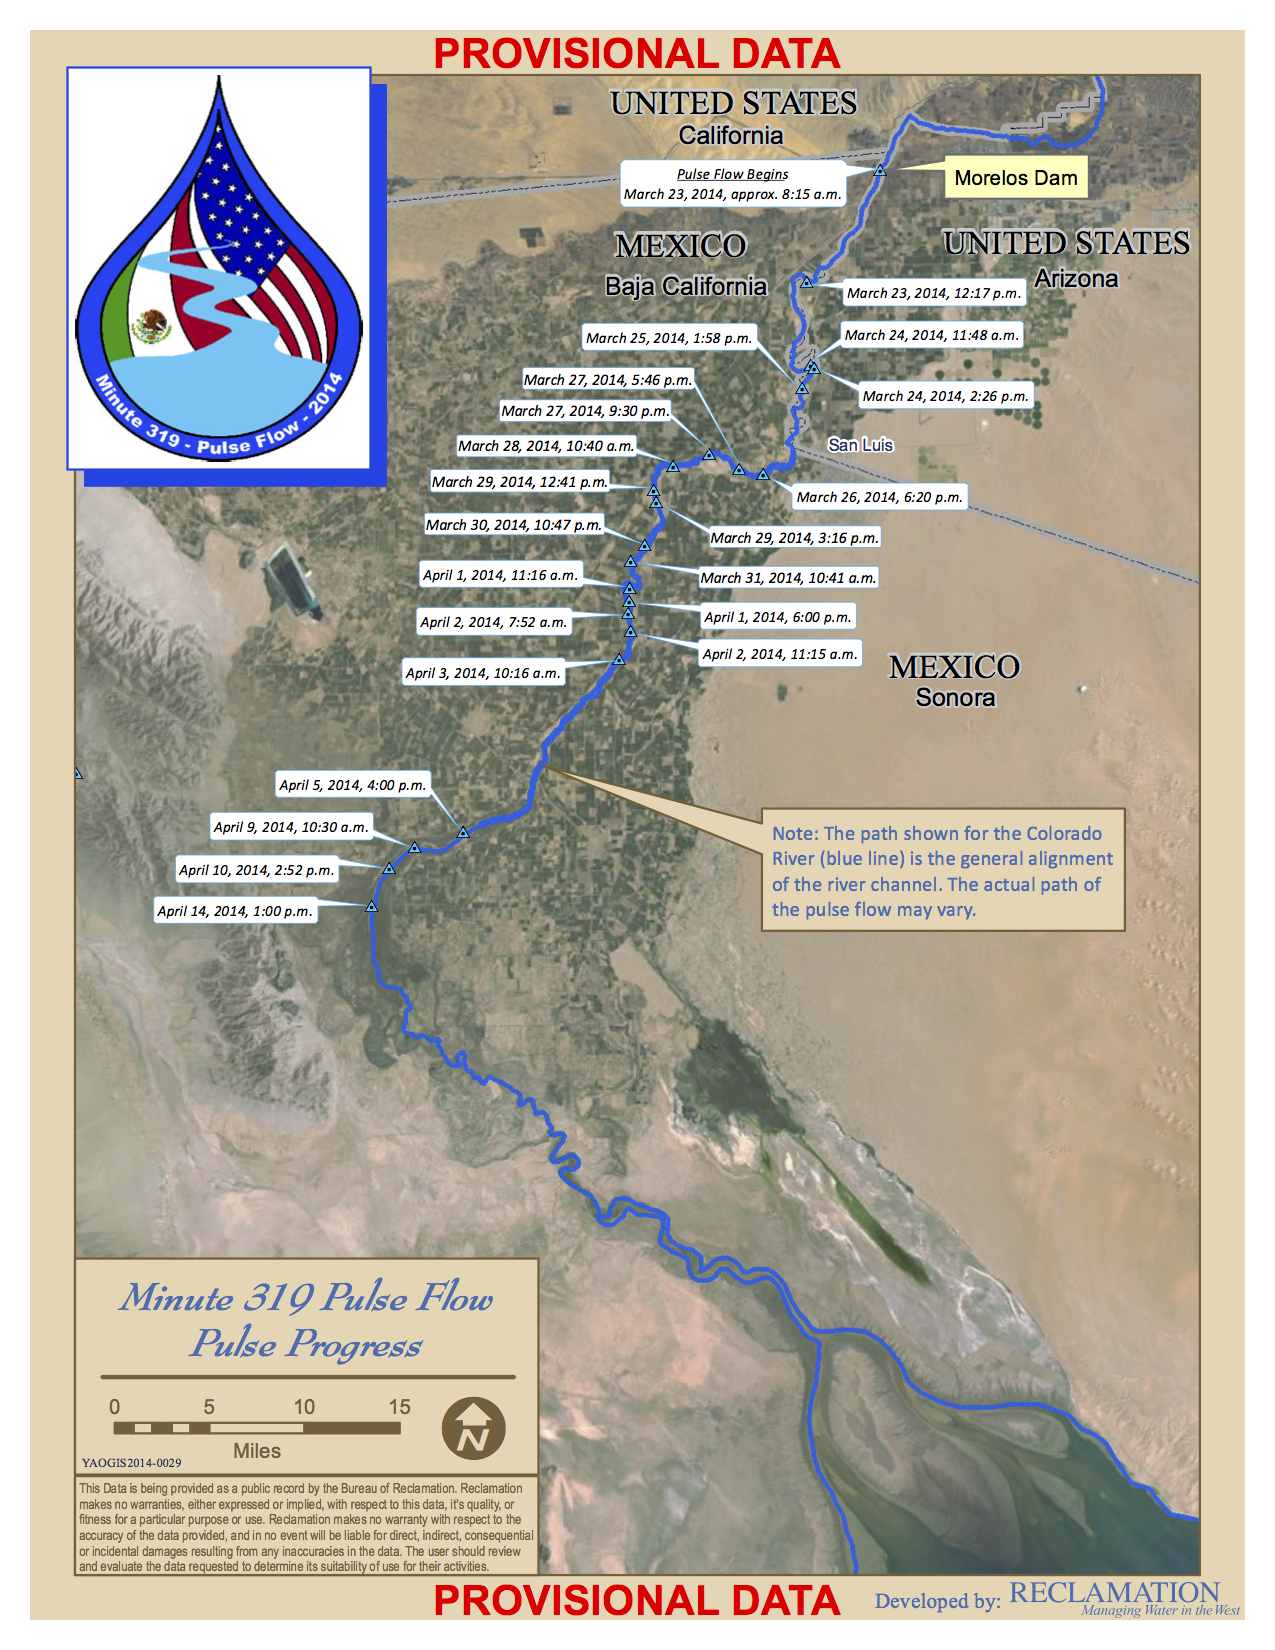 Pulse Flow Map, April 14, 2014, courtesy USBR